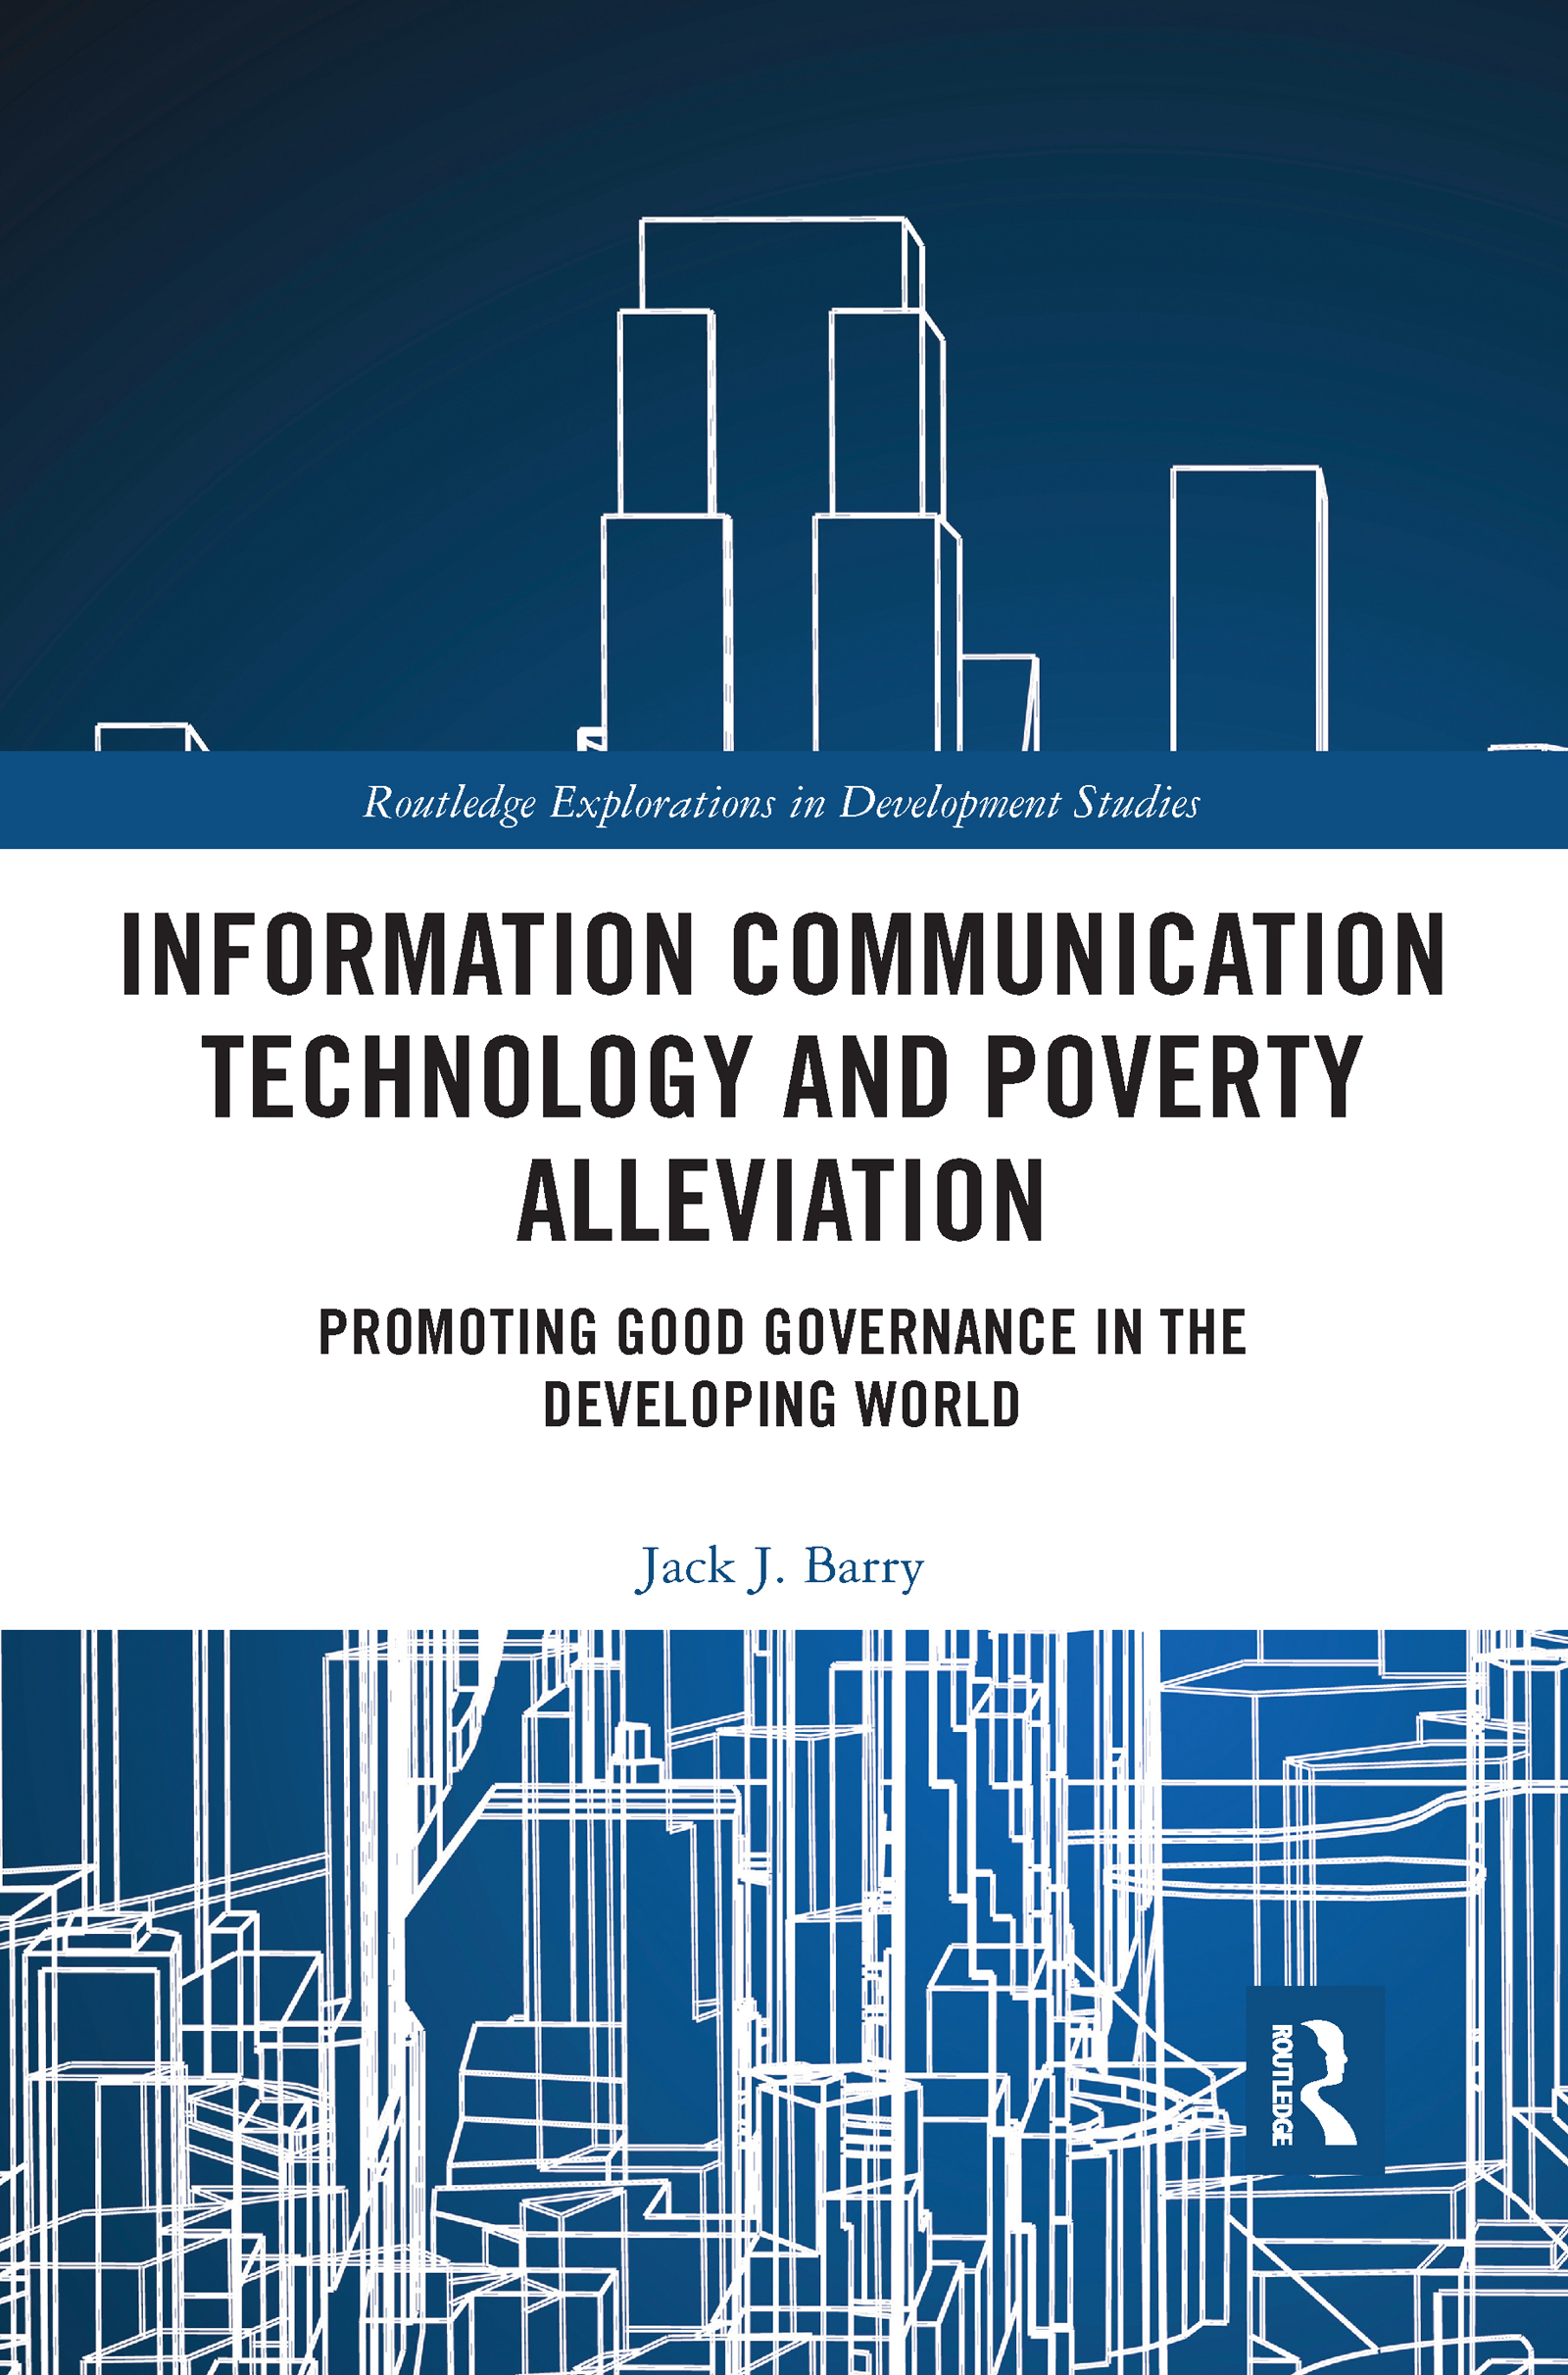 Information Communication Technology and Poverty Alleviation